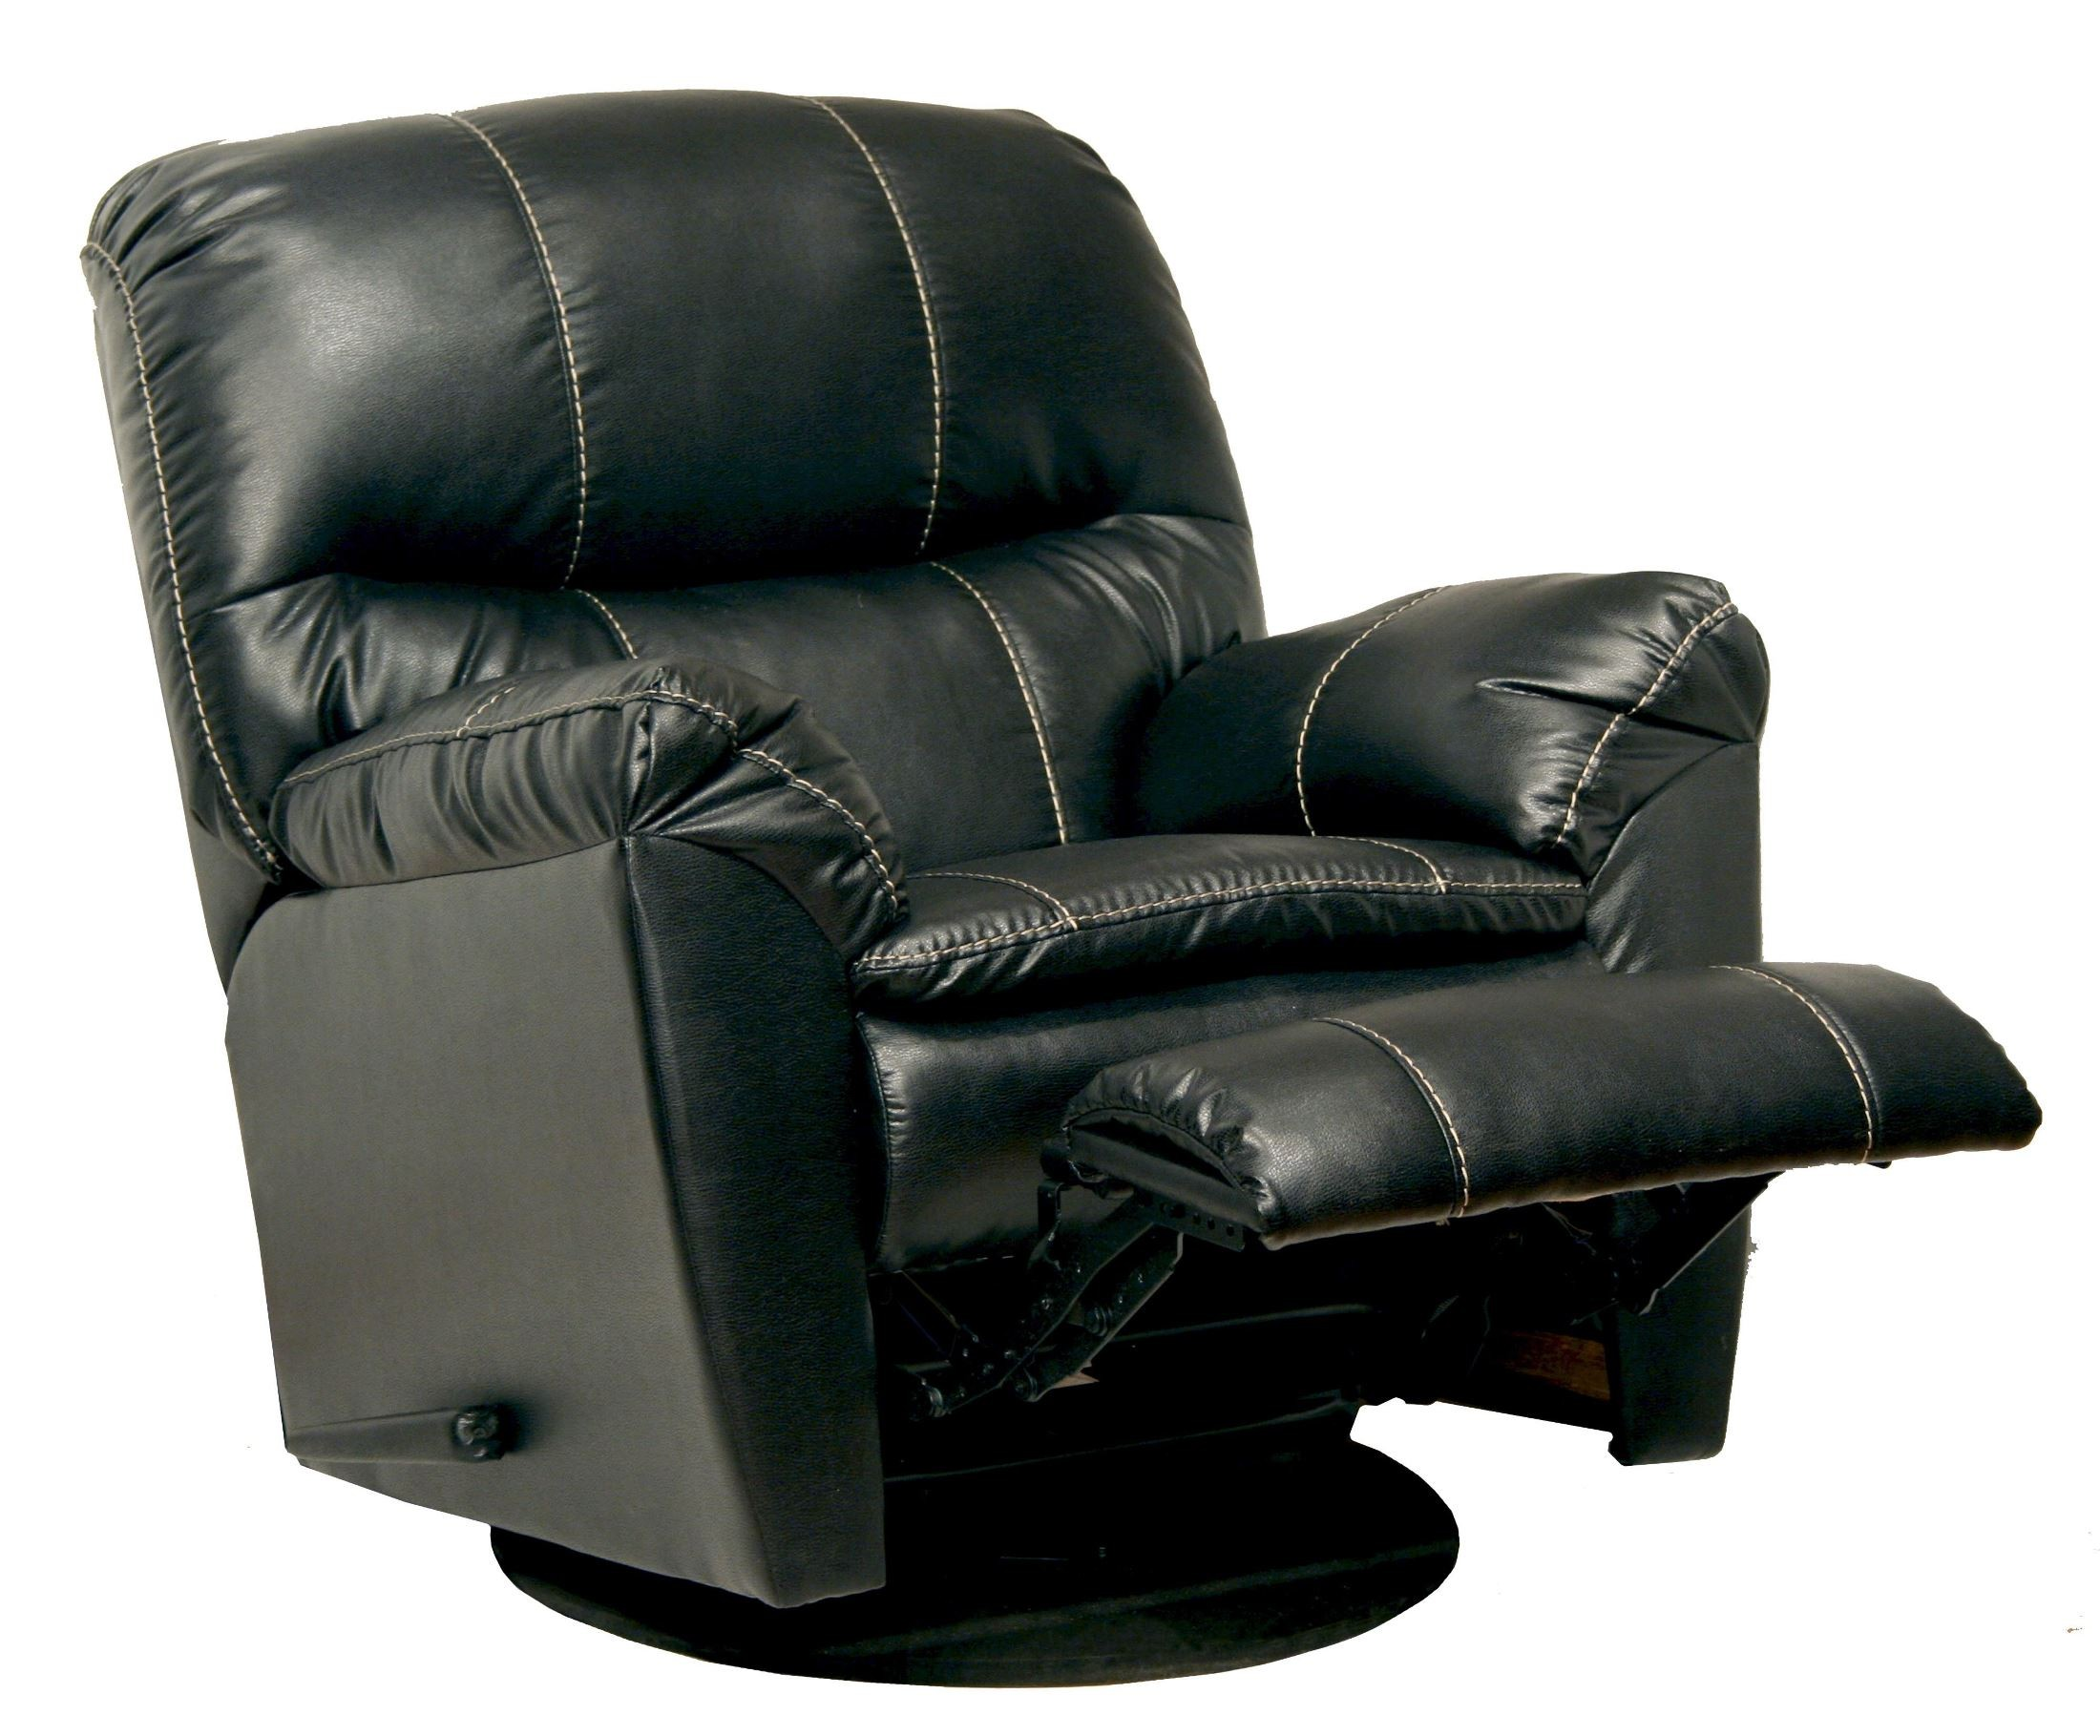 leather swivel chair recliner stand up cosmo black glider from catnapper